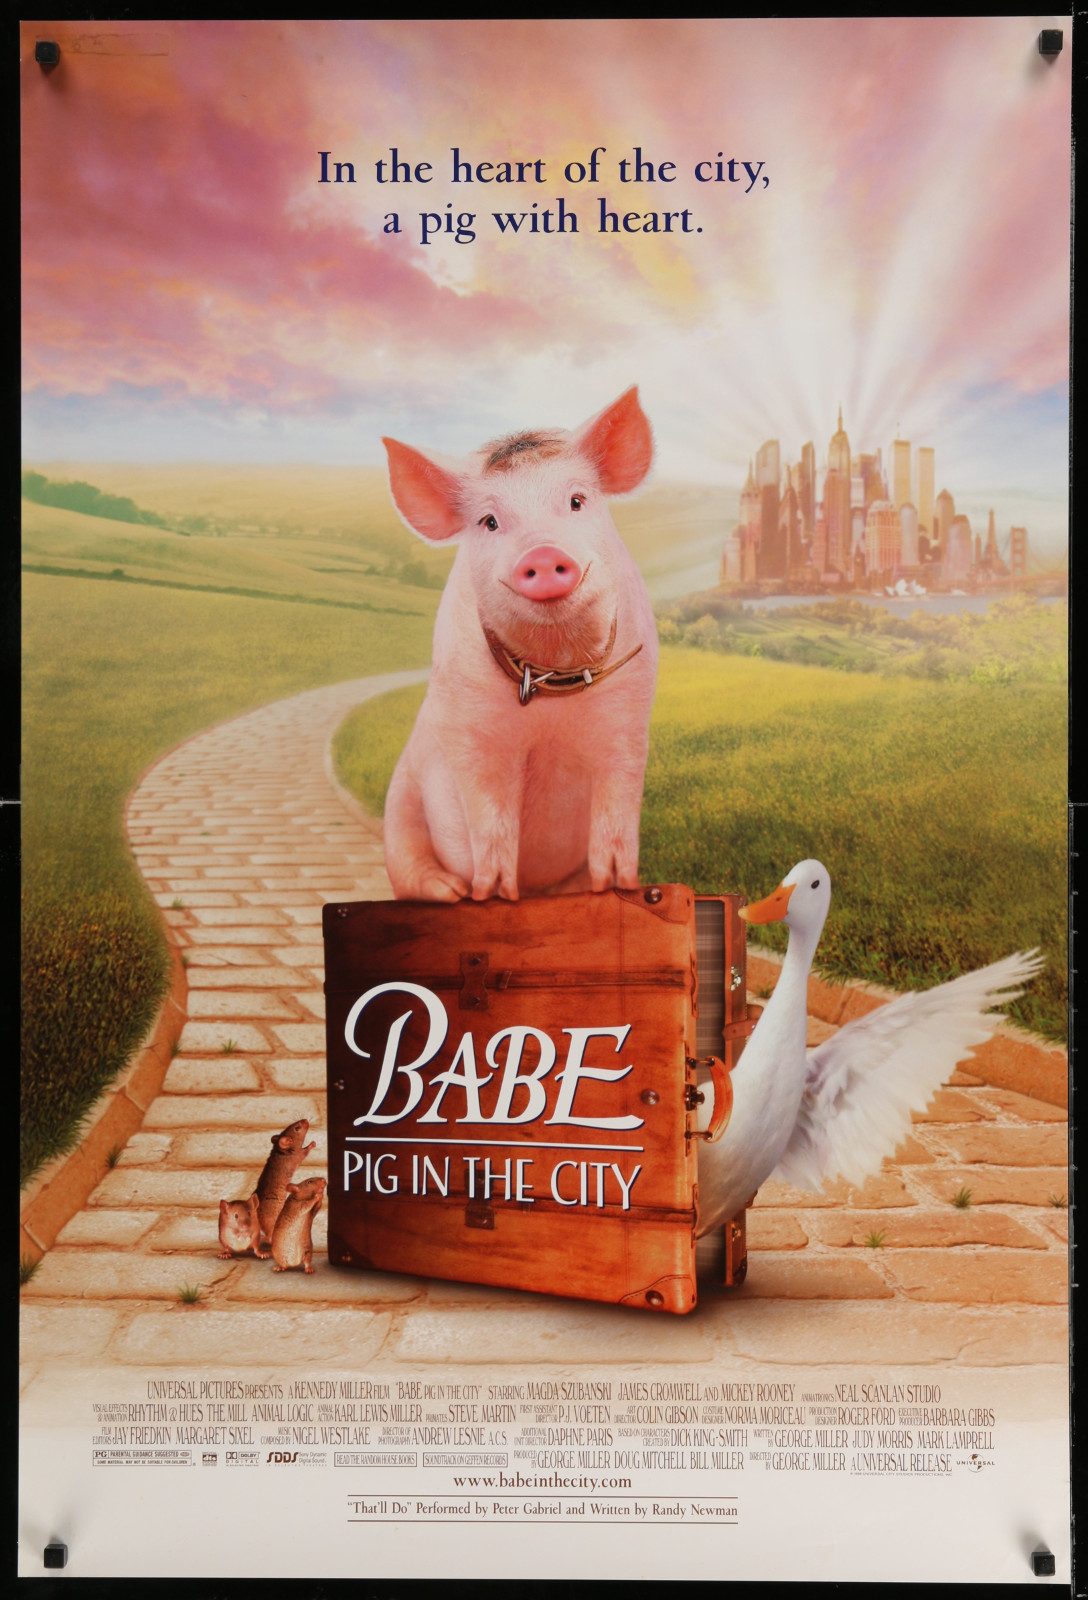 Babe Pig In The City 2A391 A Part Of A Lot 24 Unfolded Double-Sided 27X40 One-Sheets '90S-00S Great Movie Images!